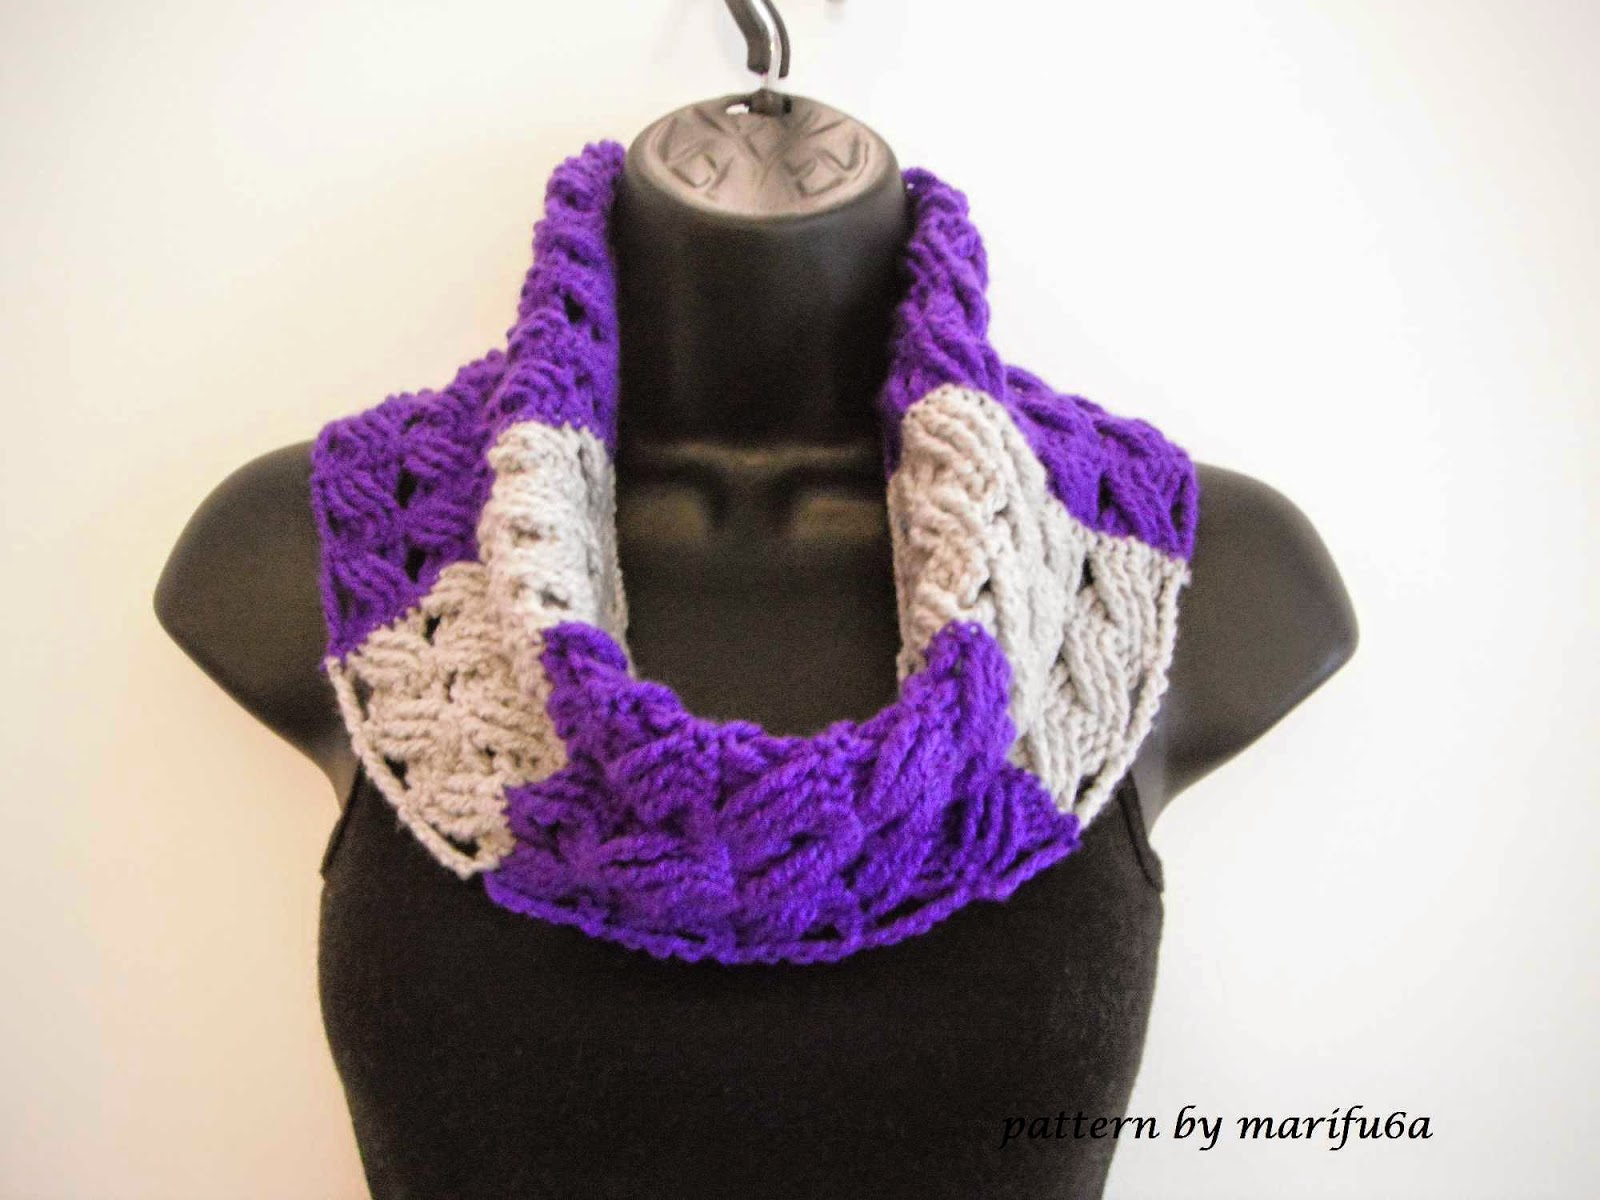 Crochet Patterns Tutorial : crochet patterns and video tutorials: how to crochet cowl free pattern ...